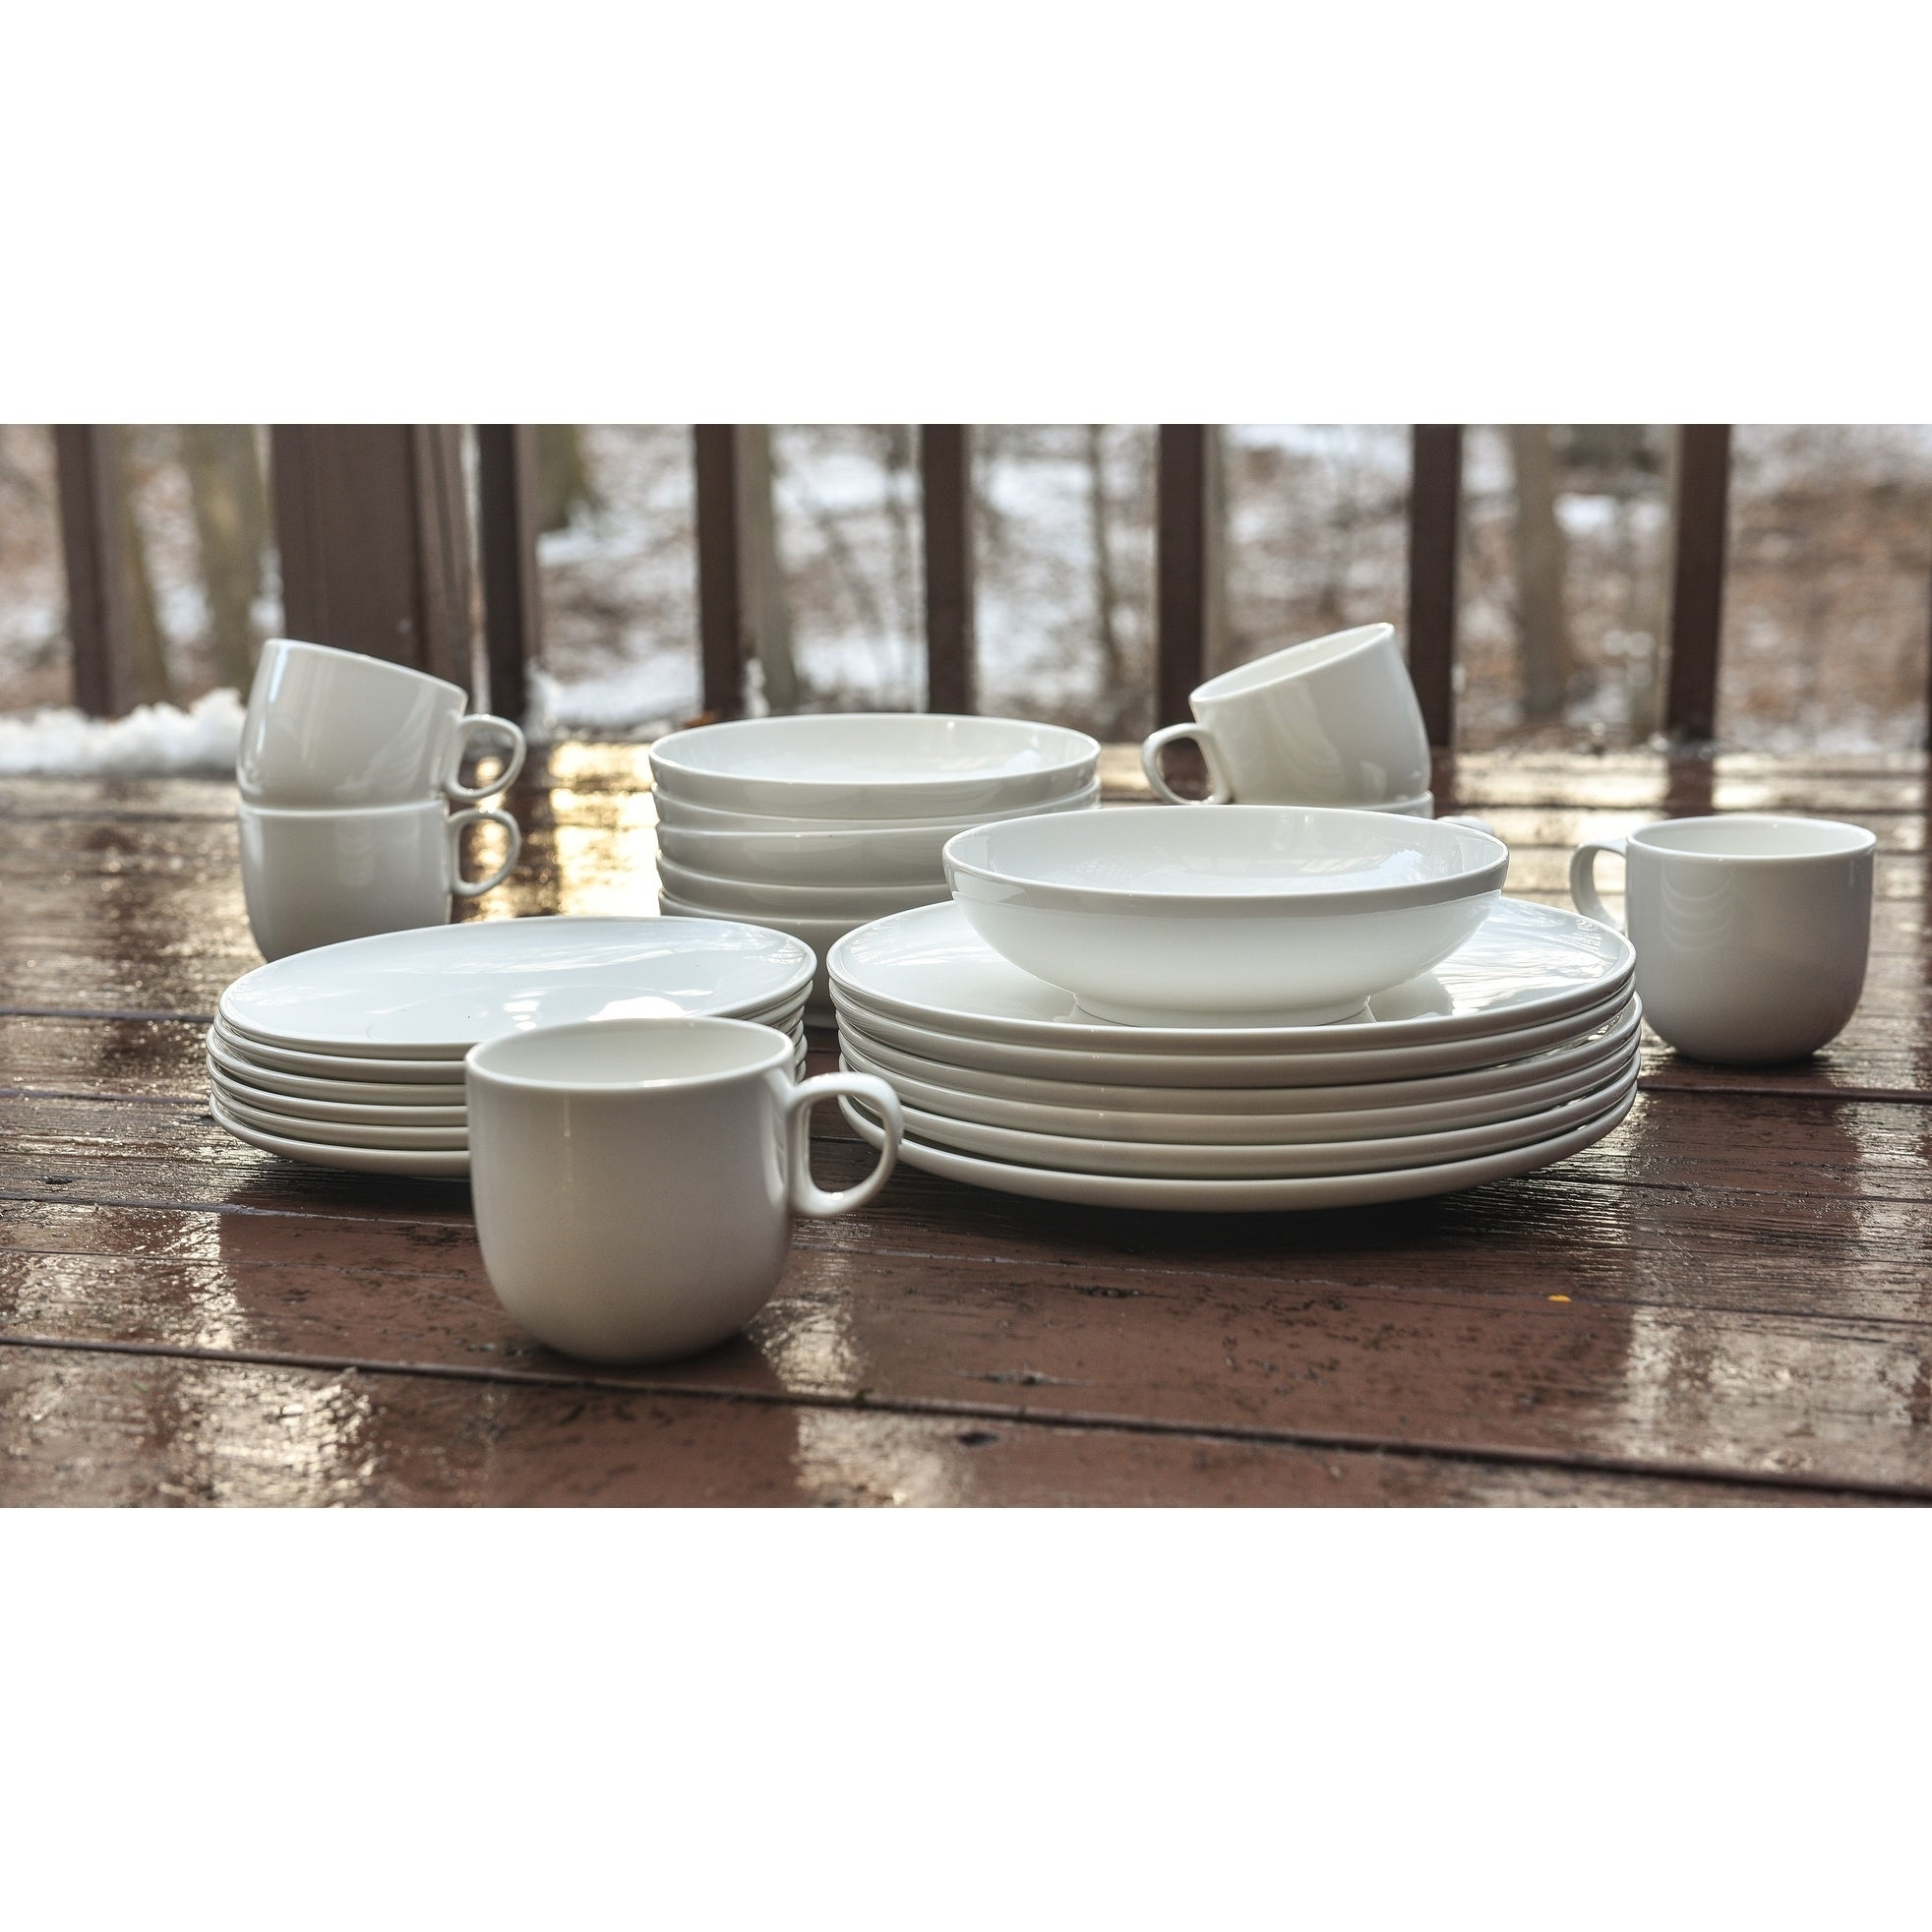 Every Time White Coupe Dinner Plates 11 Set Of 6 On Sale Overstock 6481619